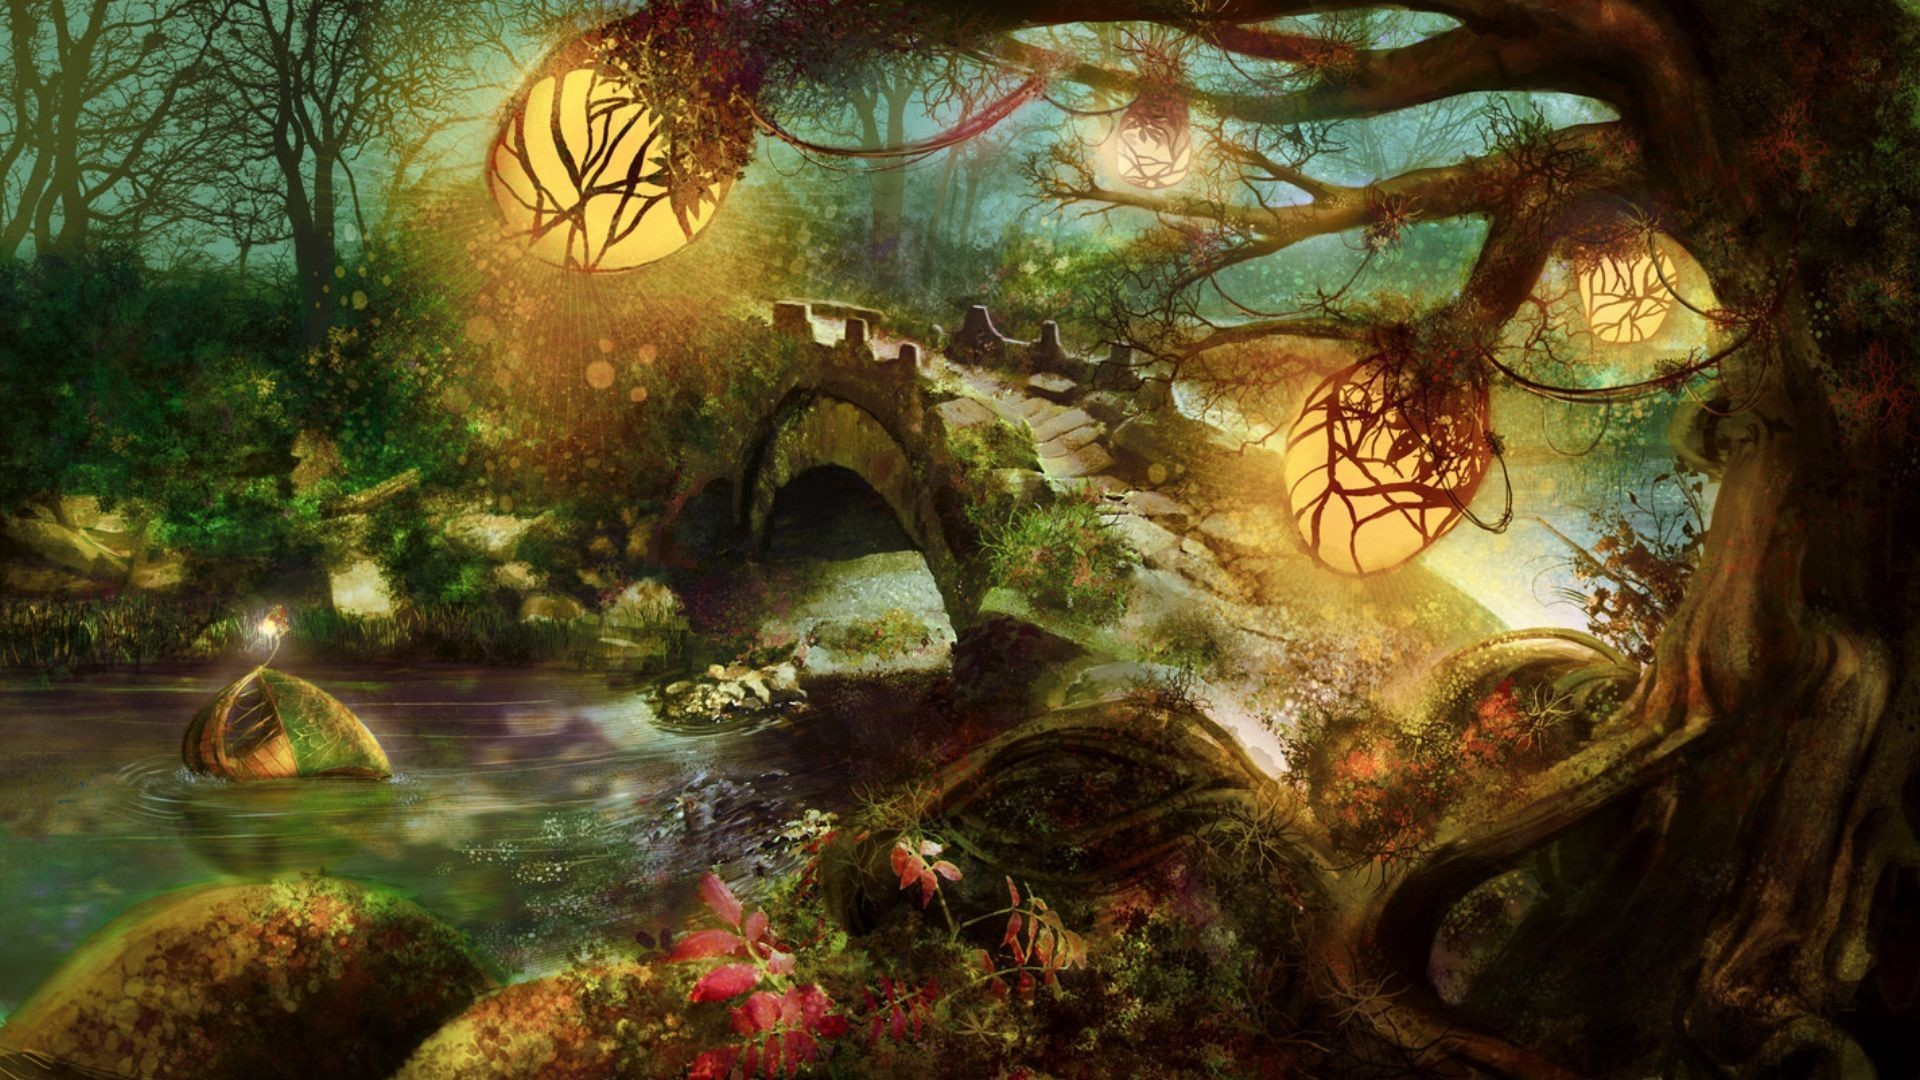 1920x1080 Fantasy Woodland wallpaper - 843752